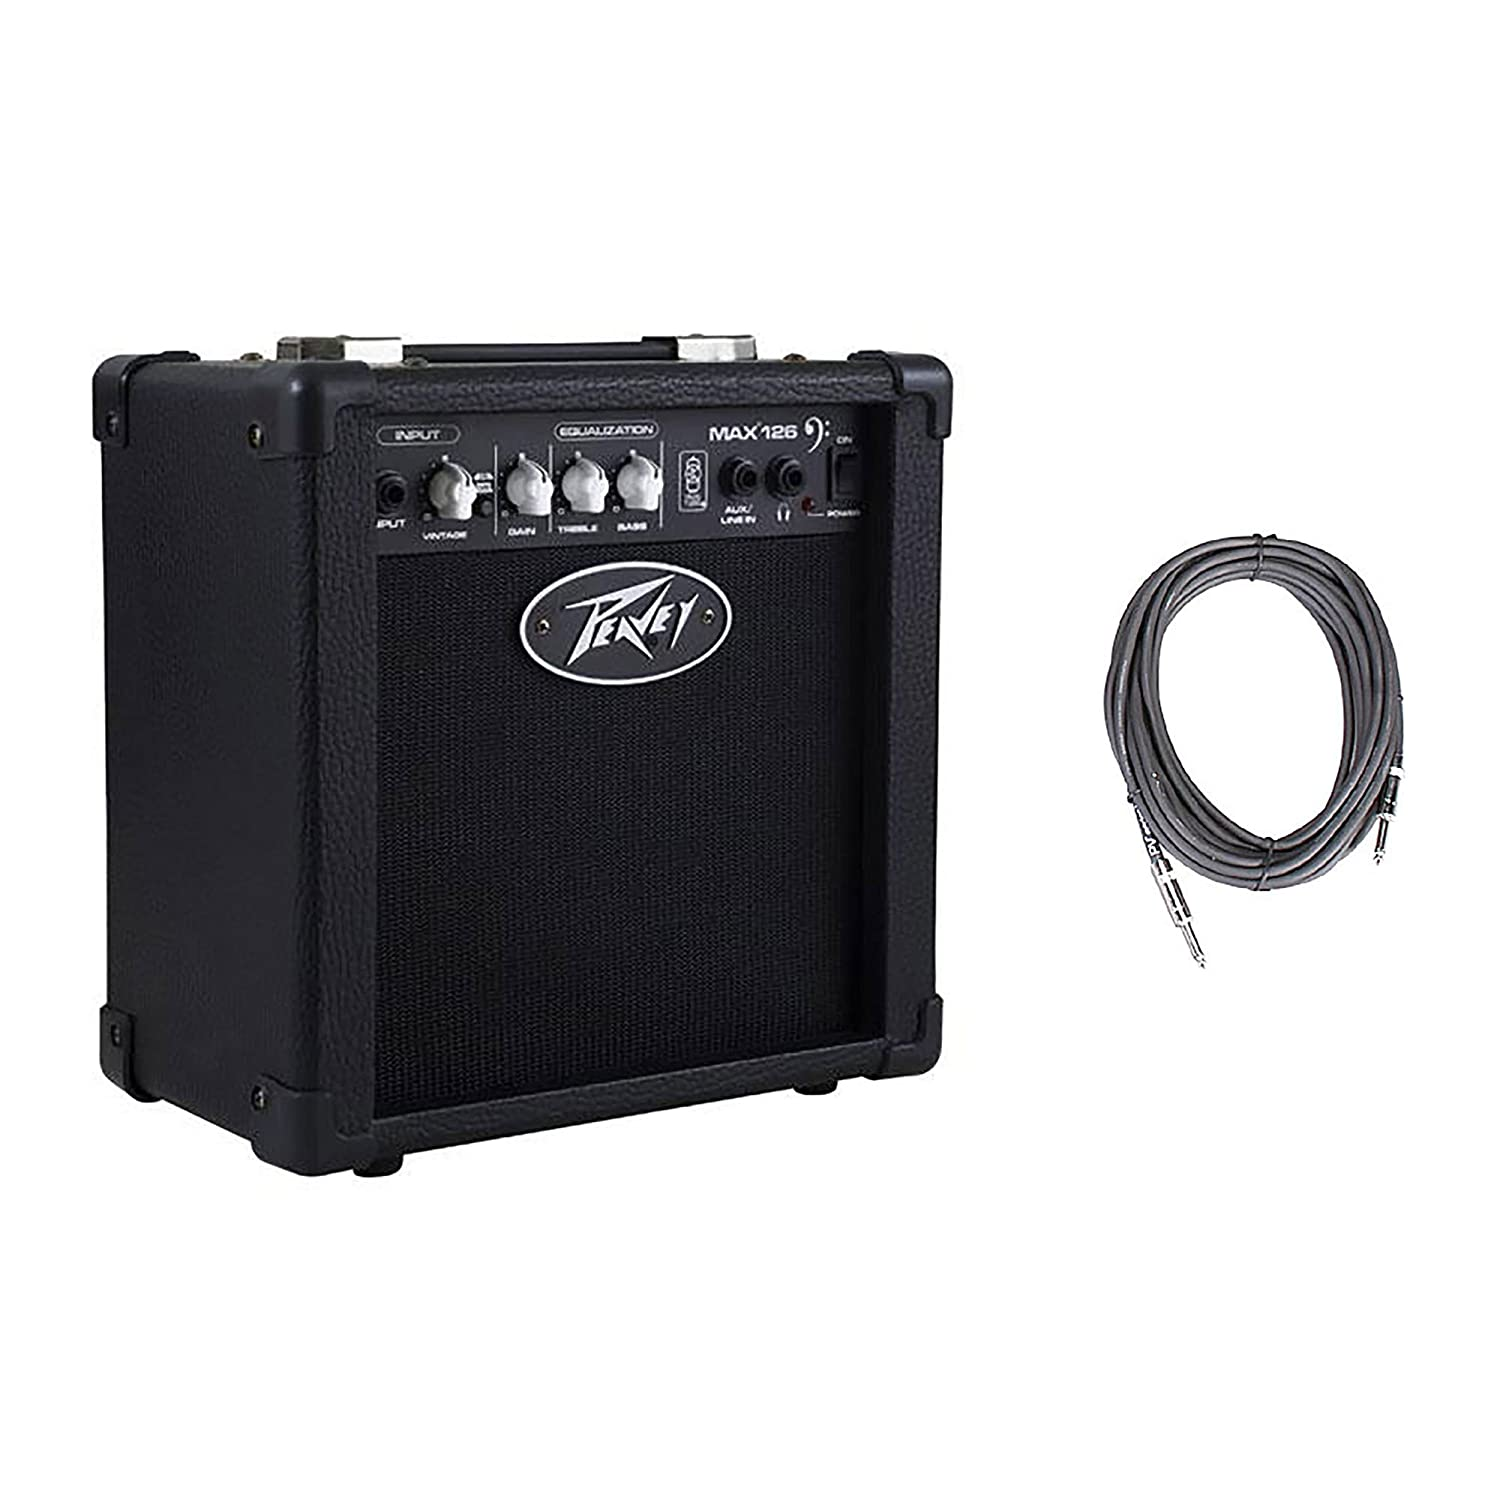 Peavey Max 126 6.5' Compact Vented 10W Bass Guitar Combo Amp + 10' Cable